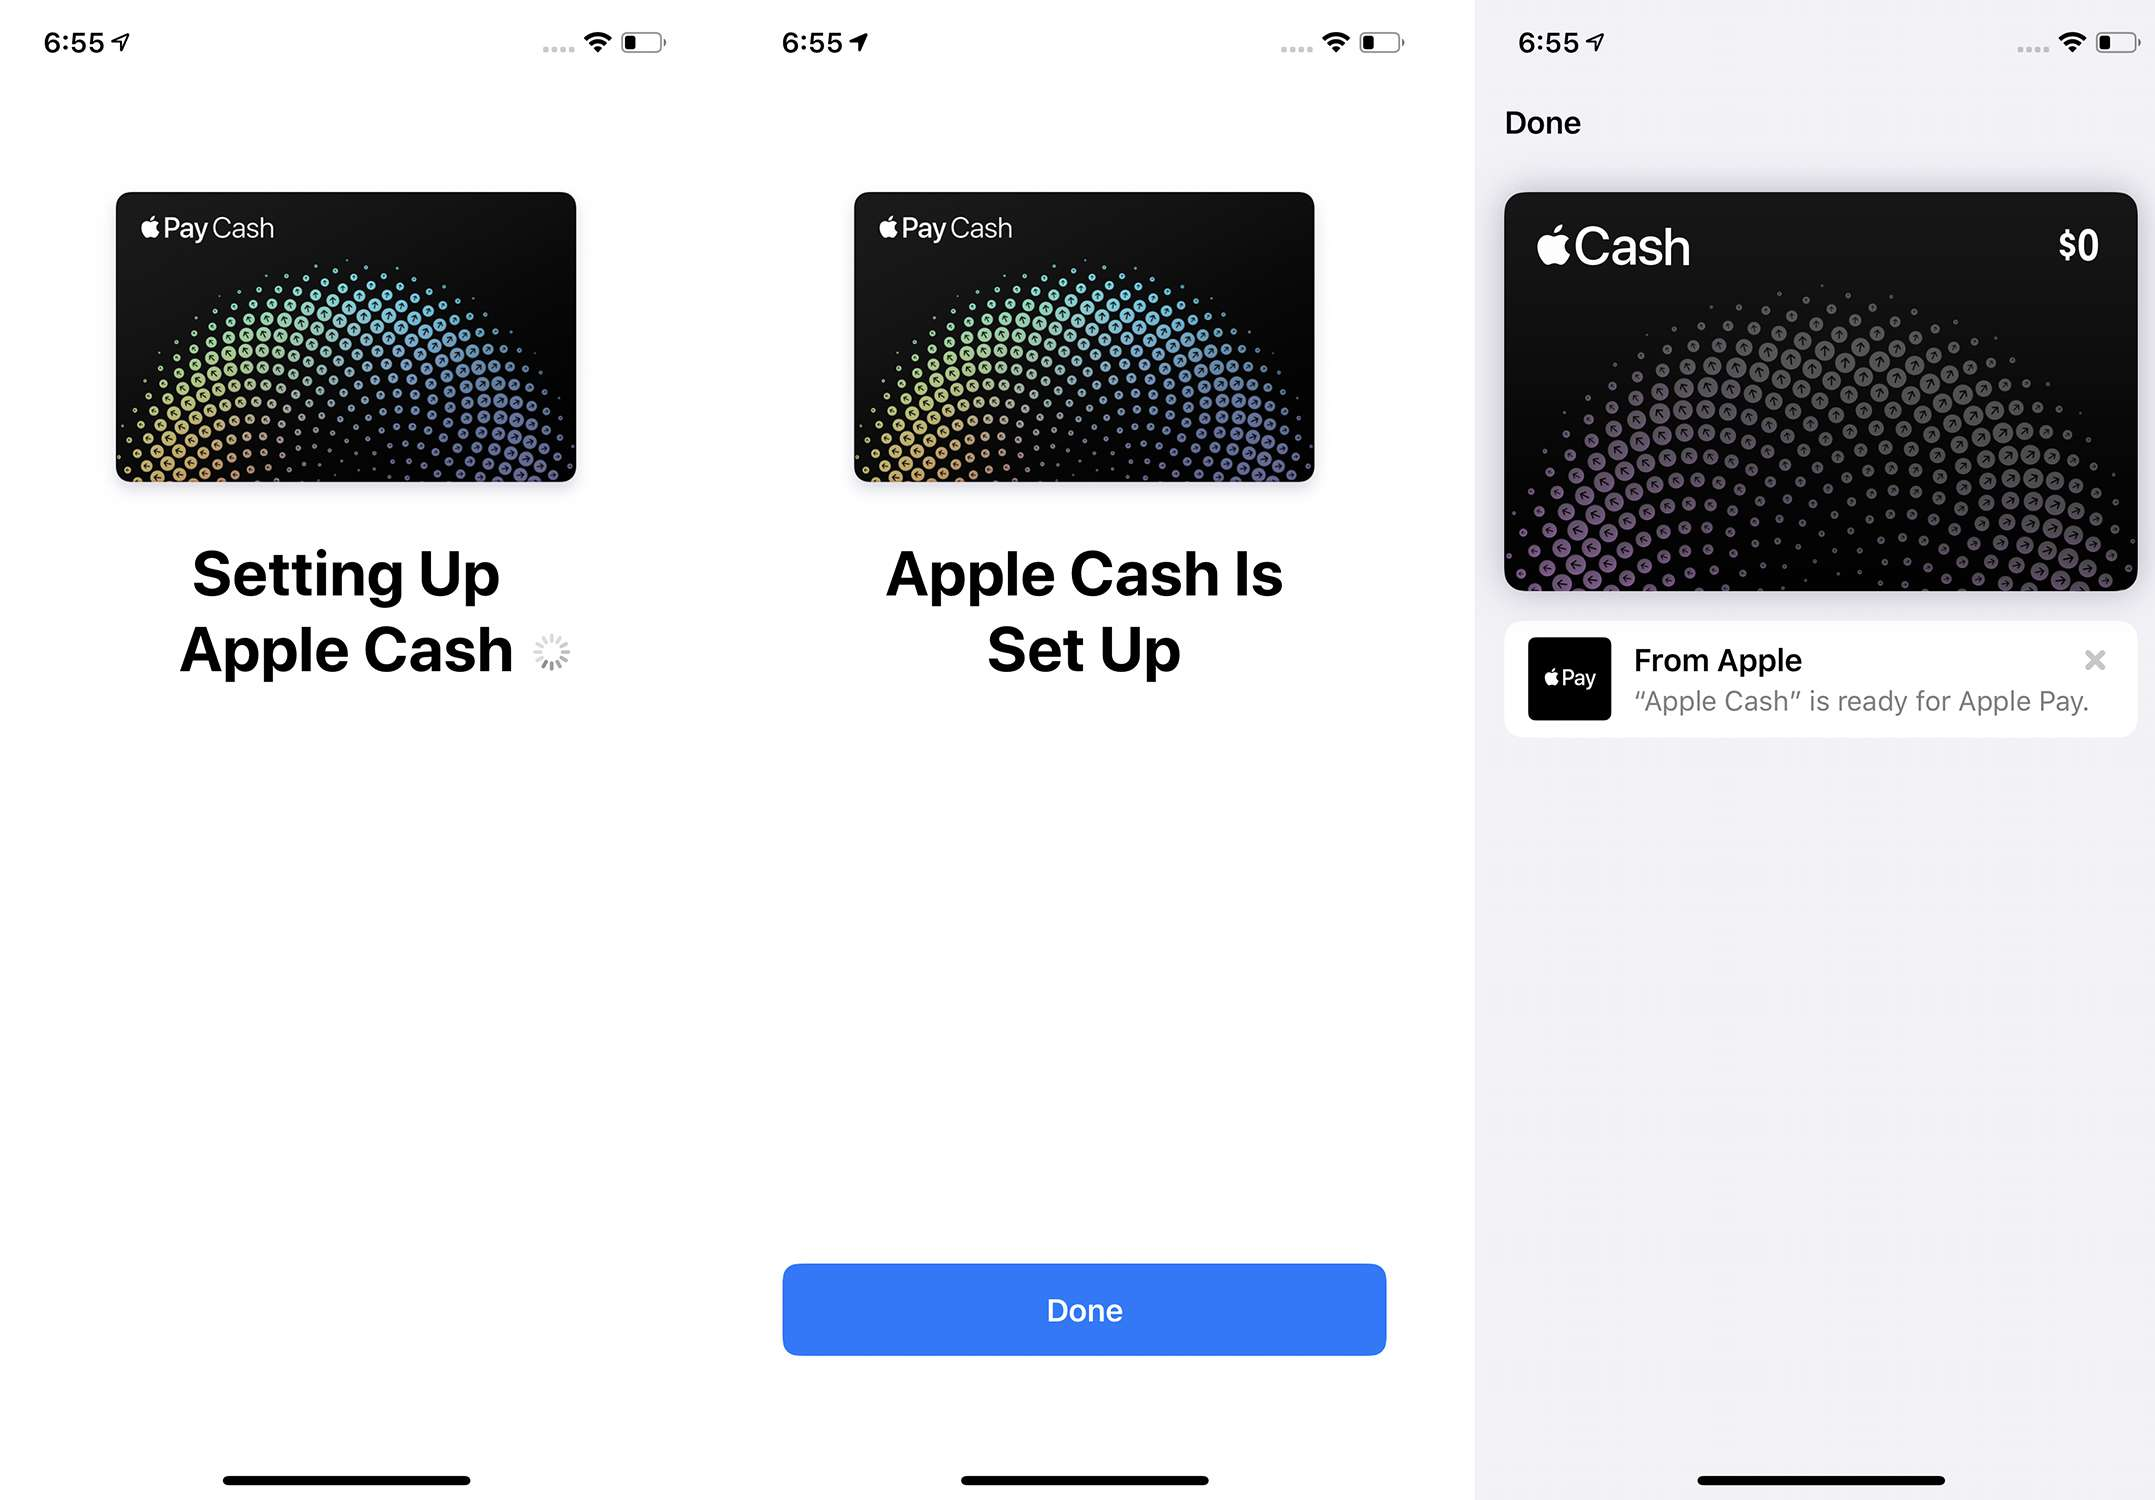 Screenshots of the last 3 steps of setting up Apple Pay Cash